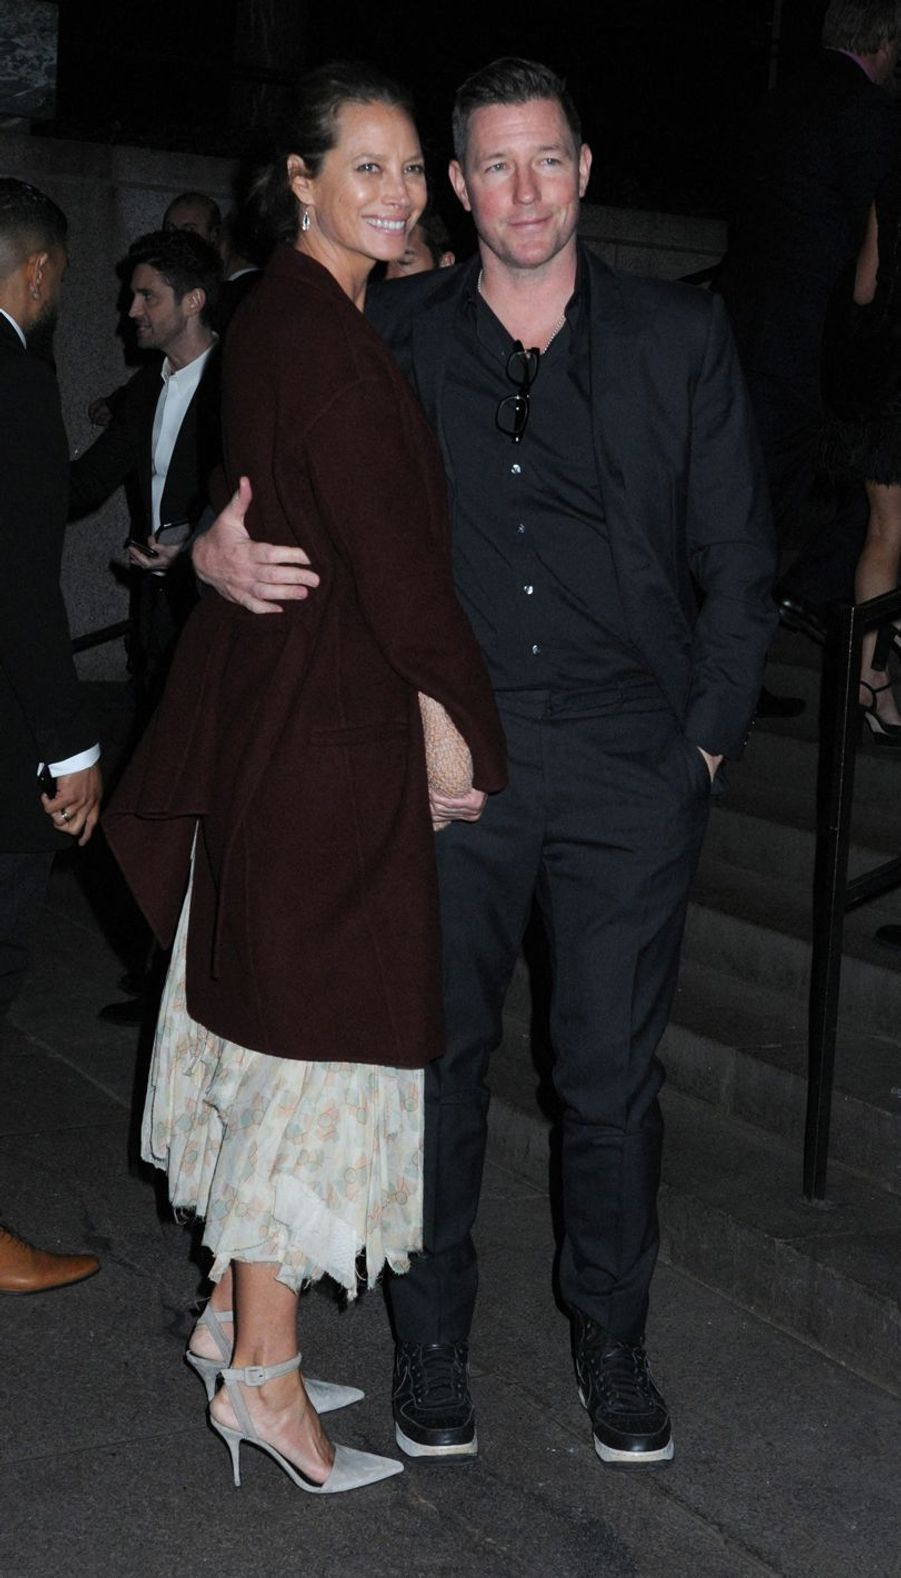 Christy Turlington et son mari Edward Burns au mariage de Marc Jacobs et Char Defrancesco à New York le 6 avril 2019